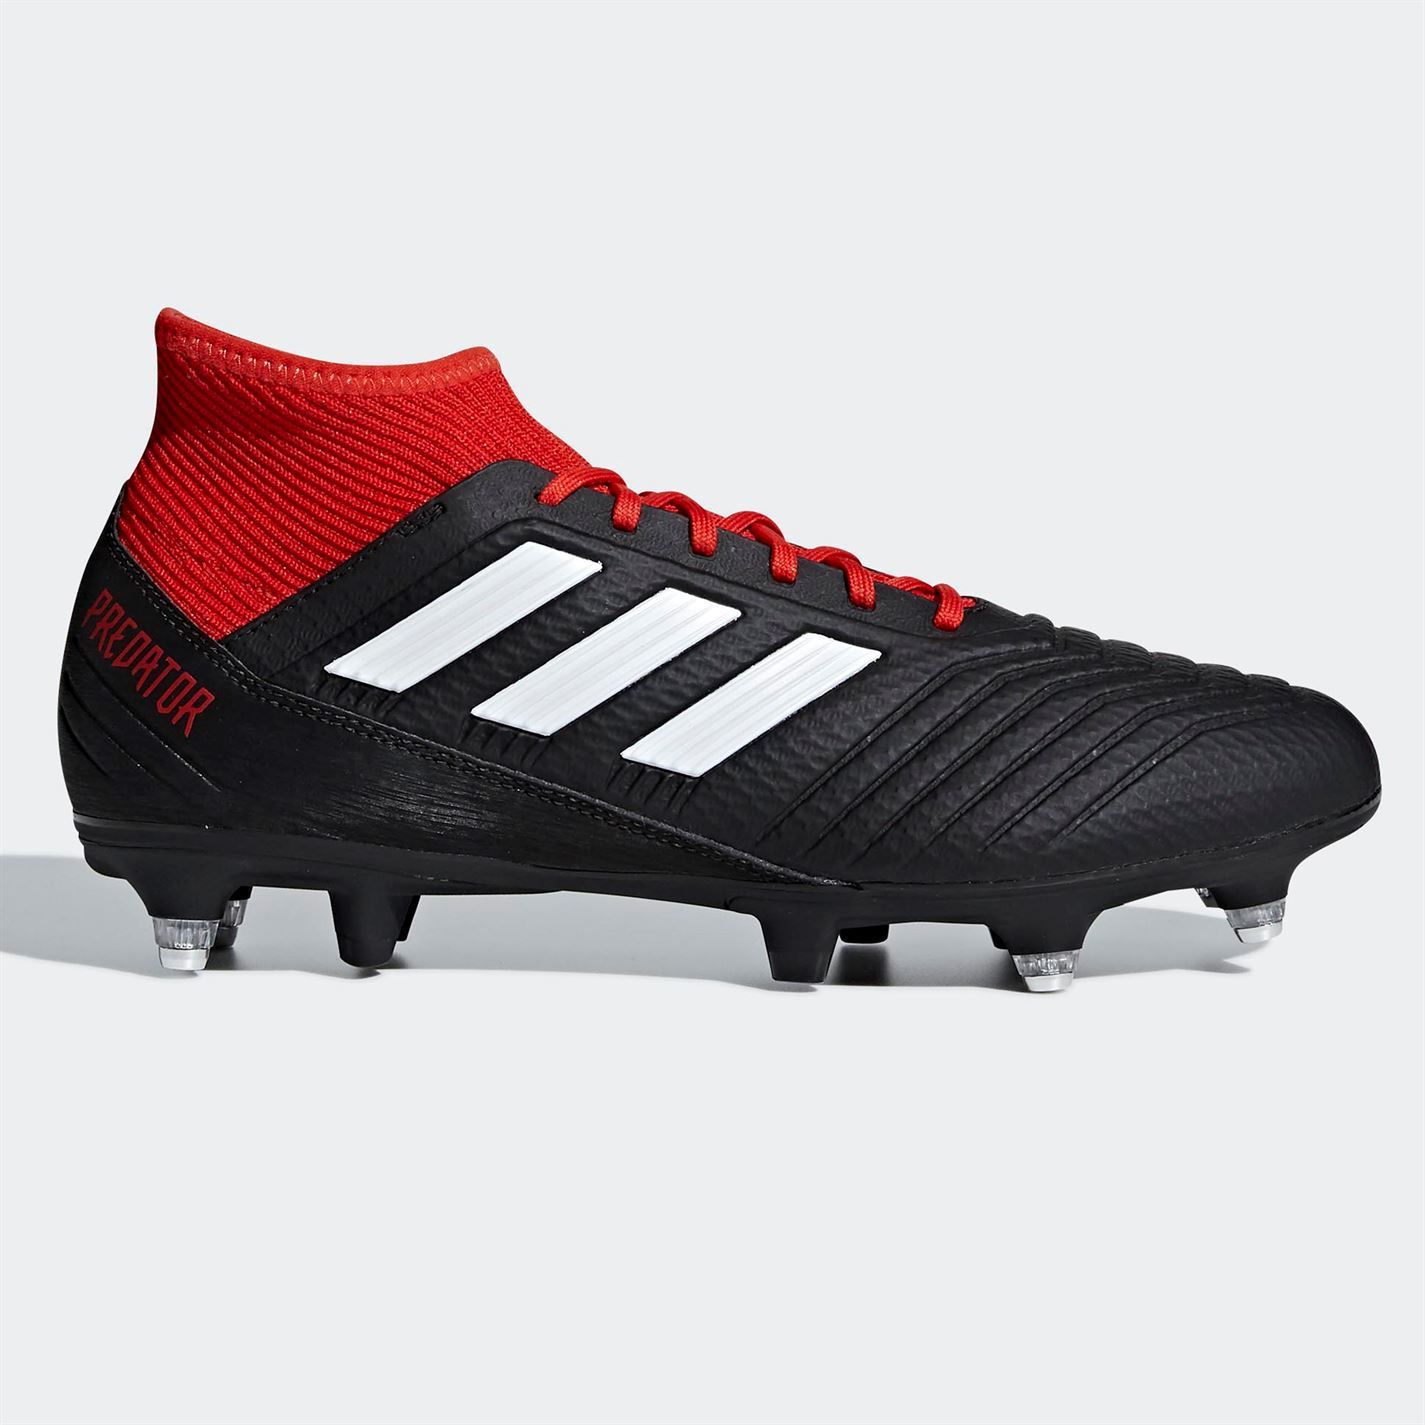 the latest b70ee a2362 ... adidas predator 18.3 SG Soft Ground Football Boots Mens Soccer Shoes  Cleats